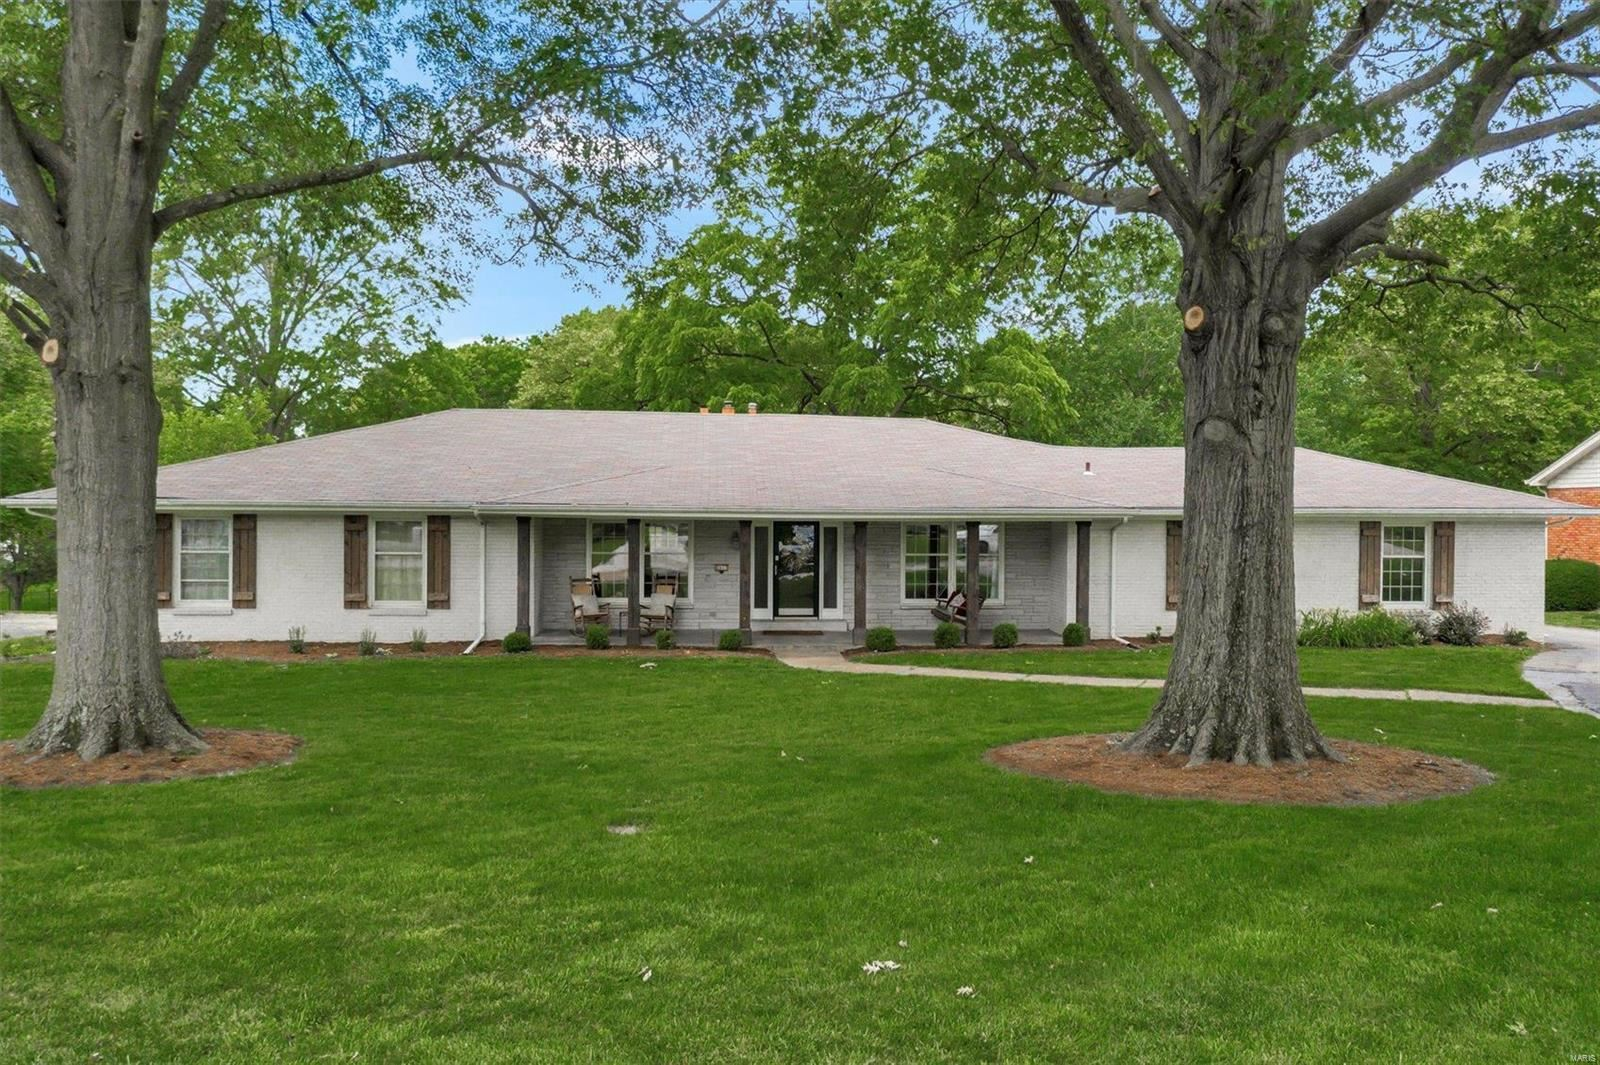 Photo for 8817 Woodpark, Sunset Hills, MO 63127 (MLS # 21041701)